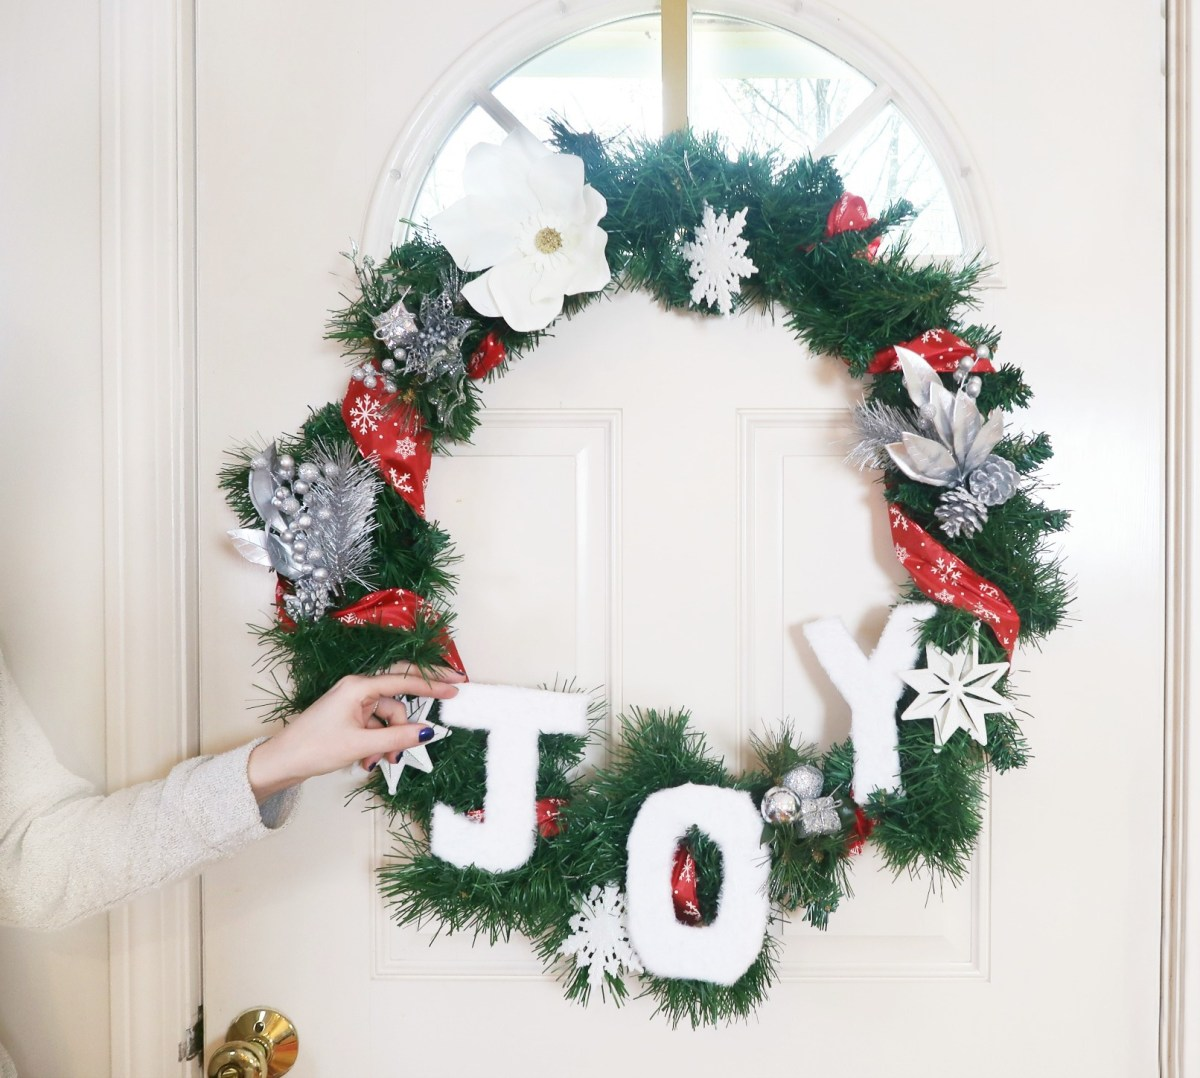 How to Make a Dollar Tree Christmas Wreath | Buy or DIY?